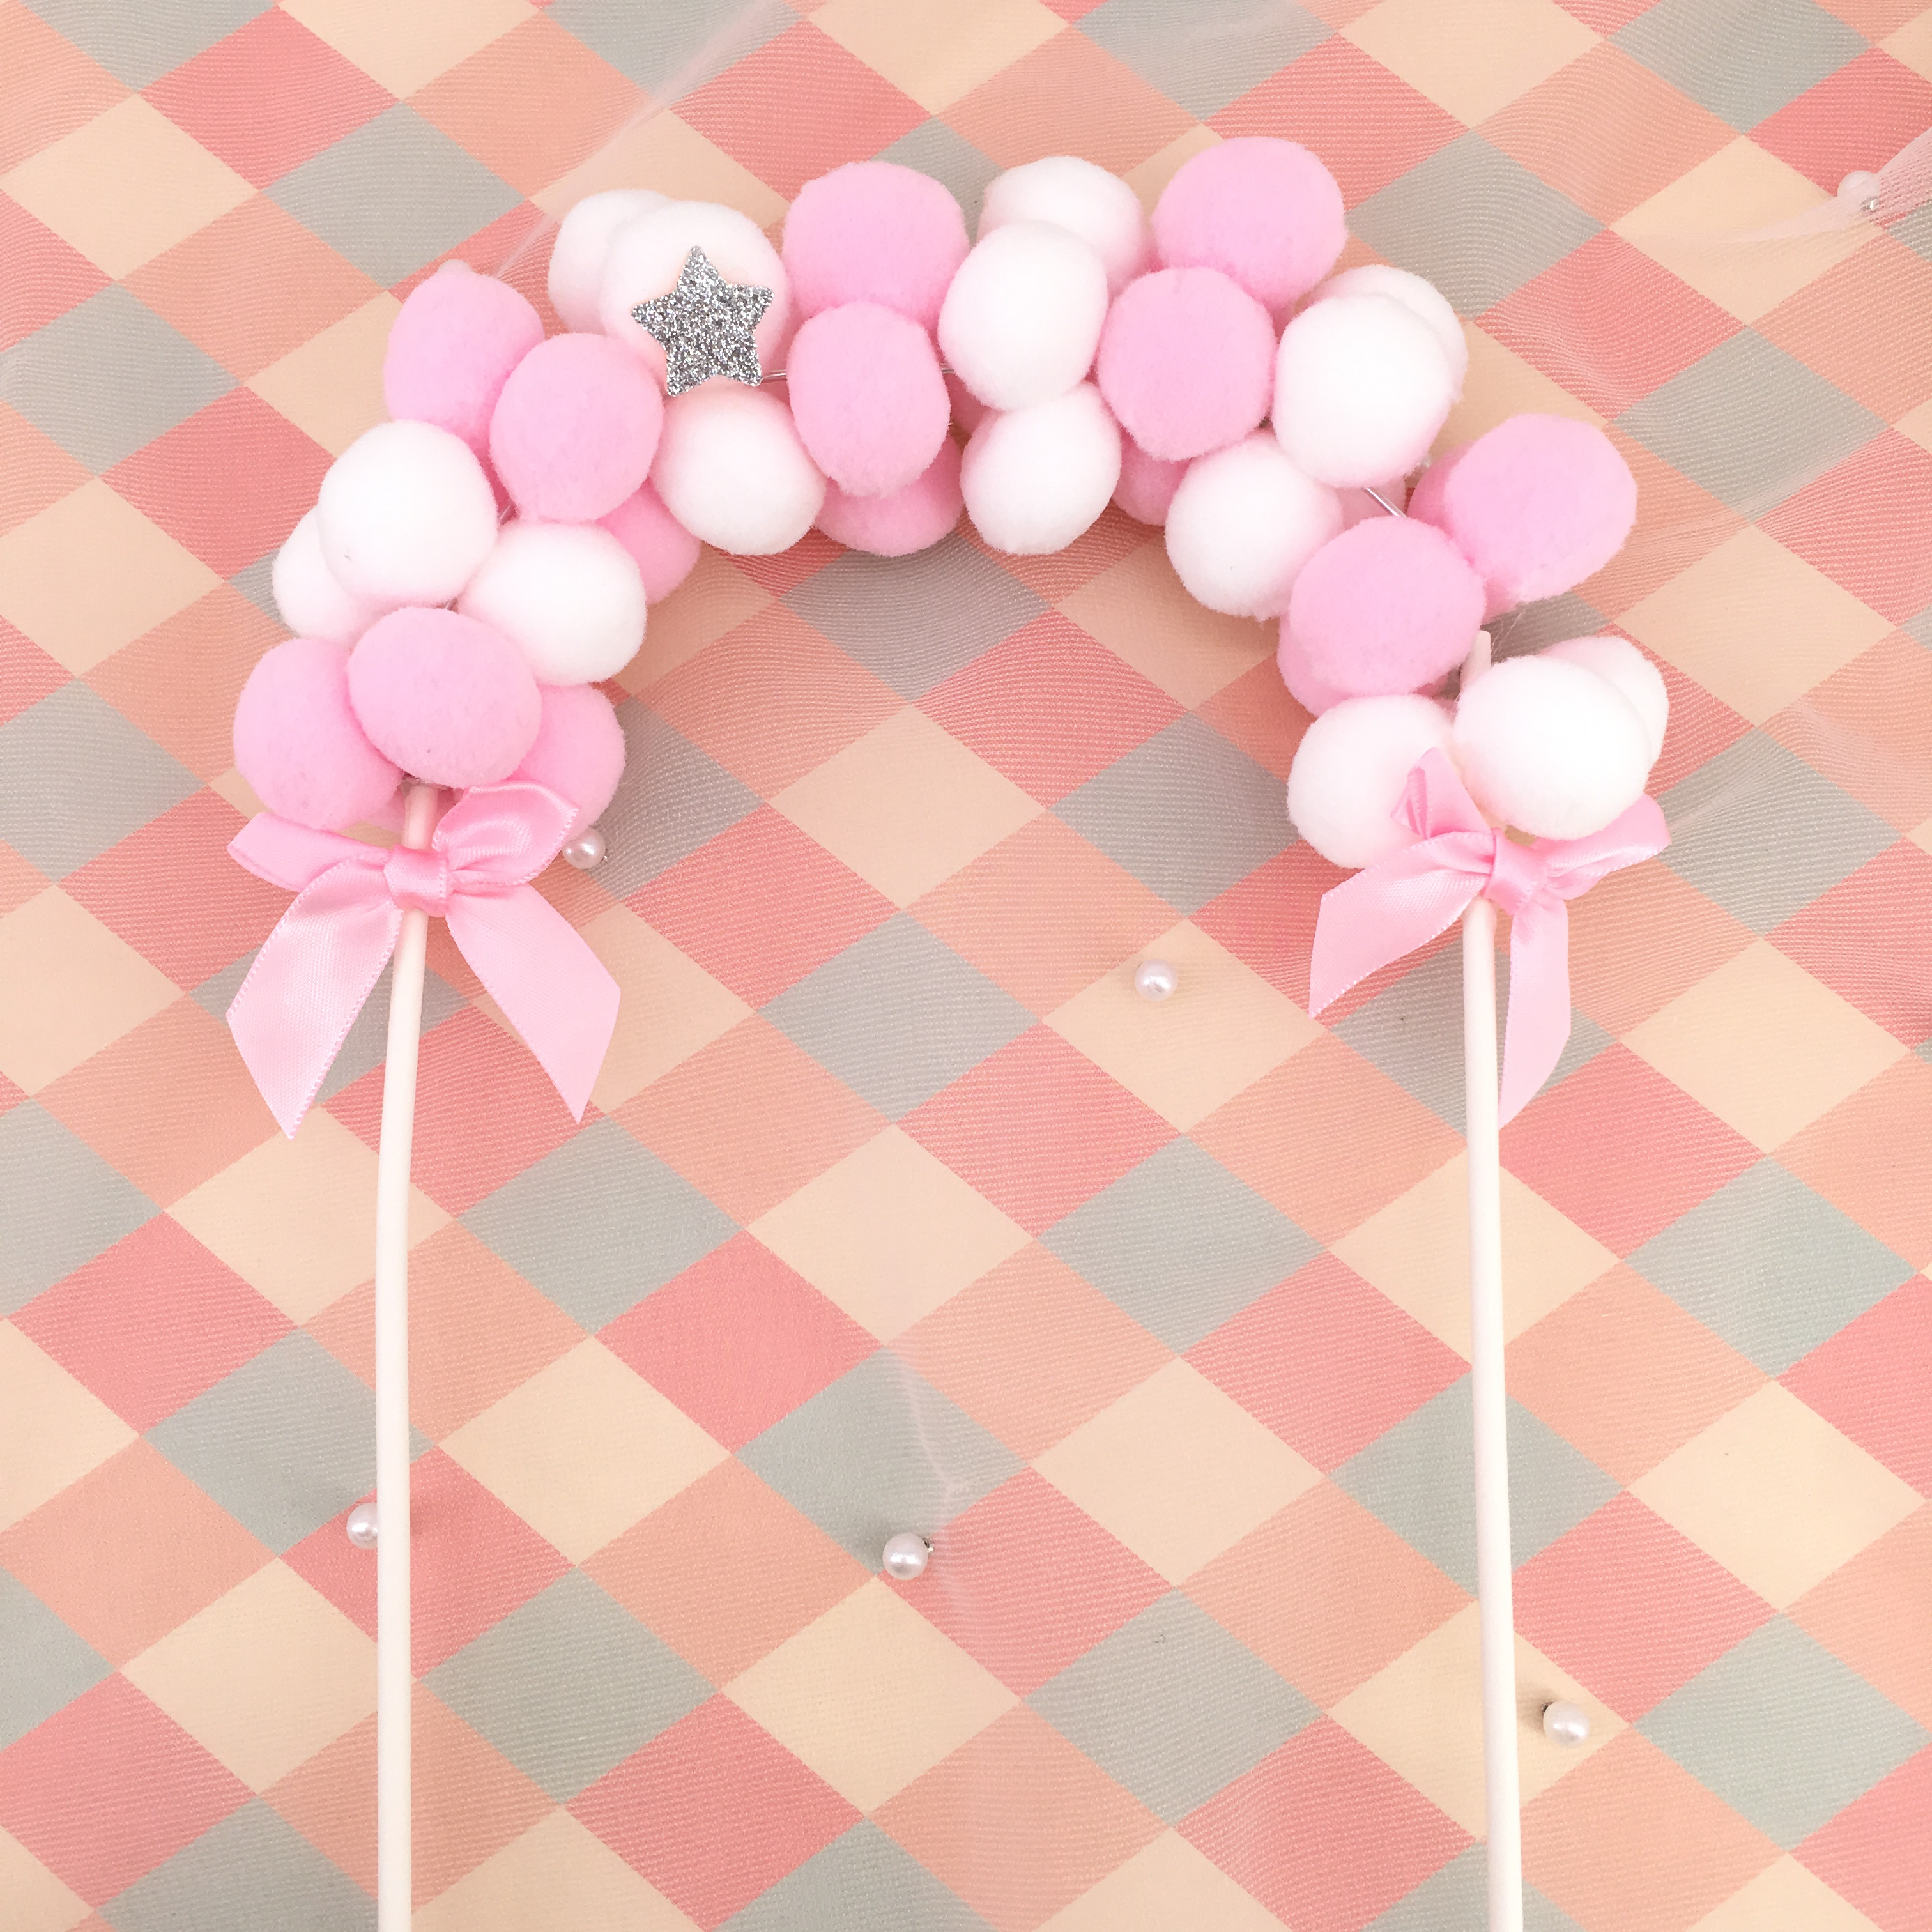 Party Supplies Birthday Flags Pompom Soft Cloud Cupcake Decor Cake Topper